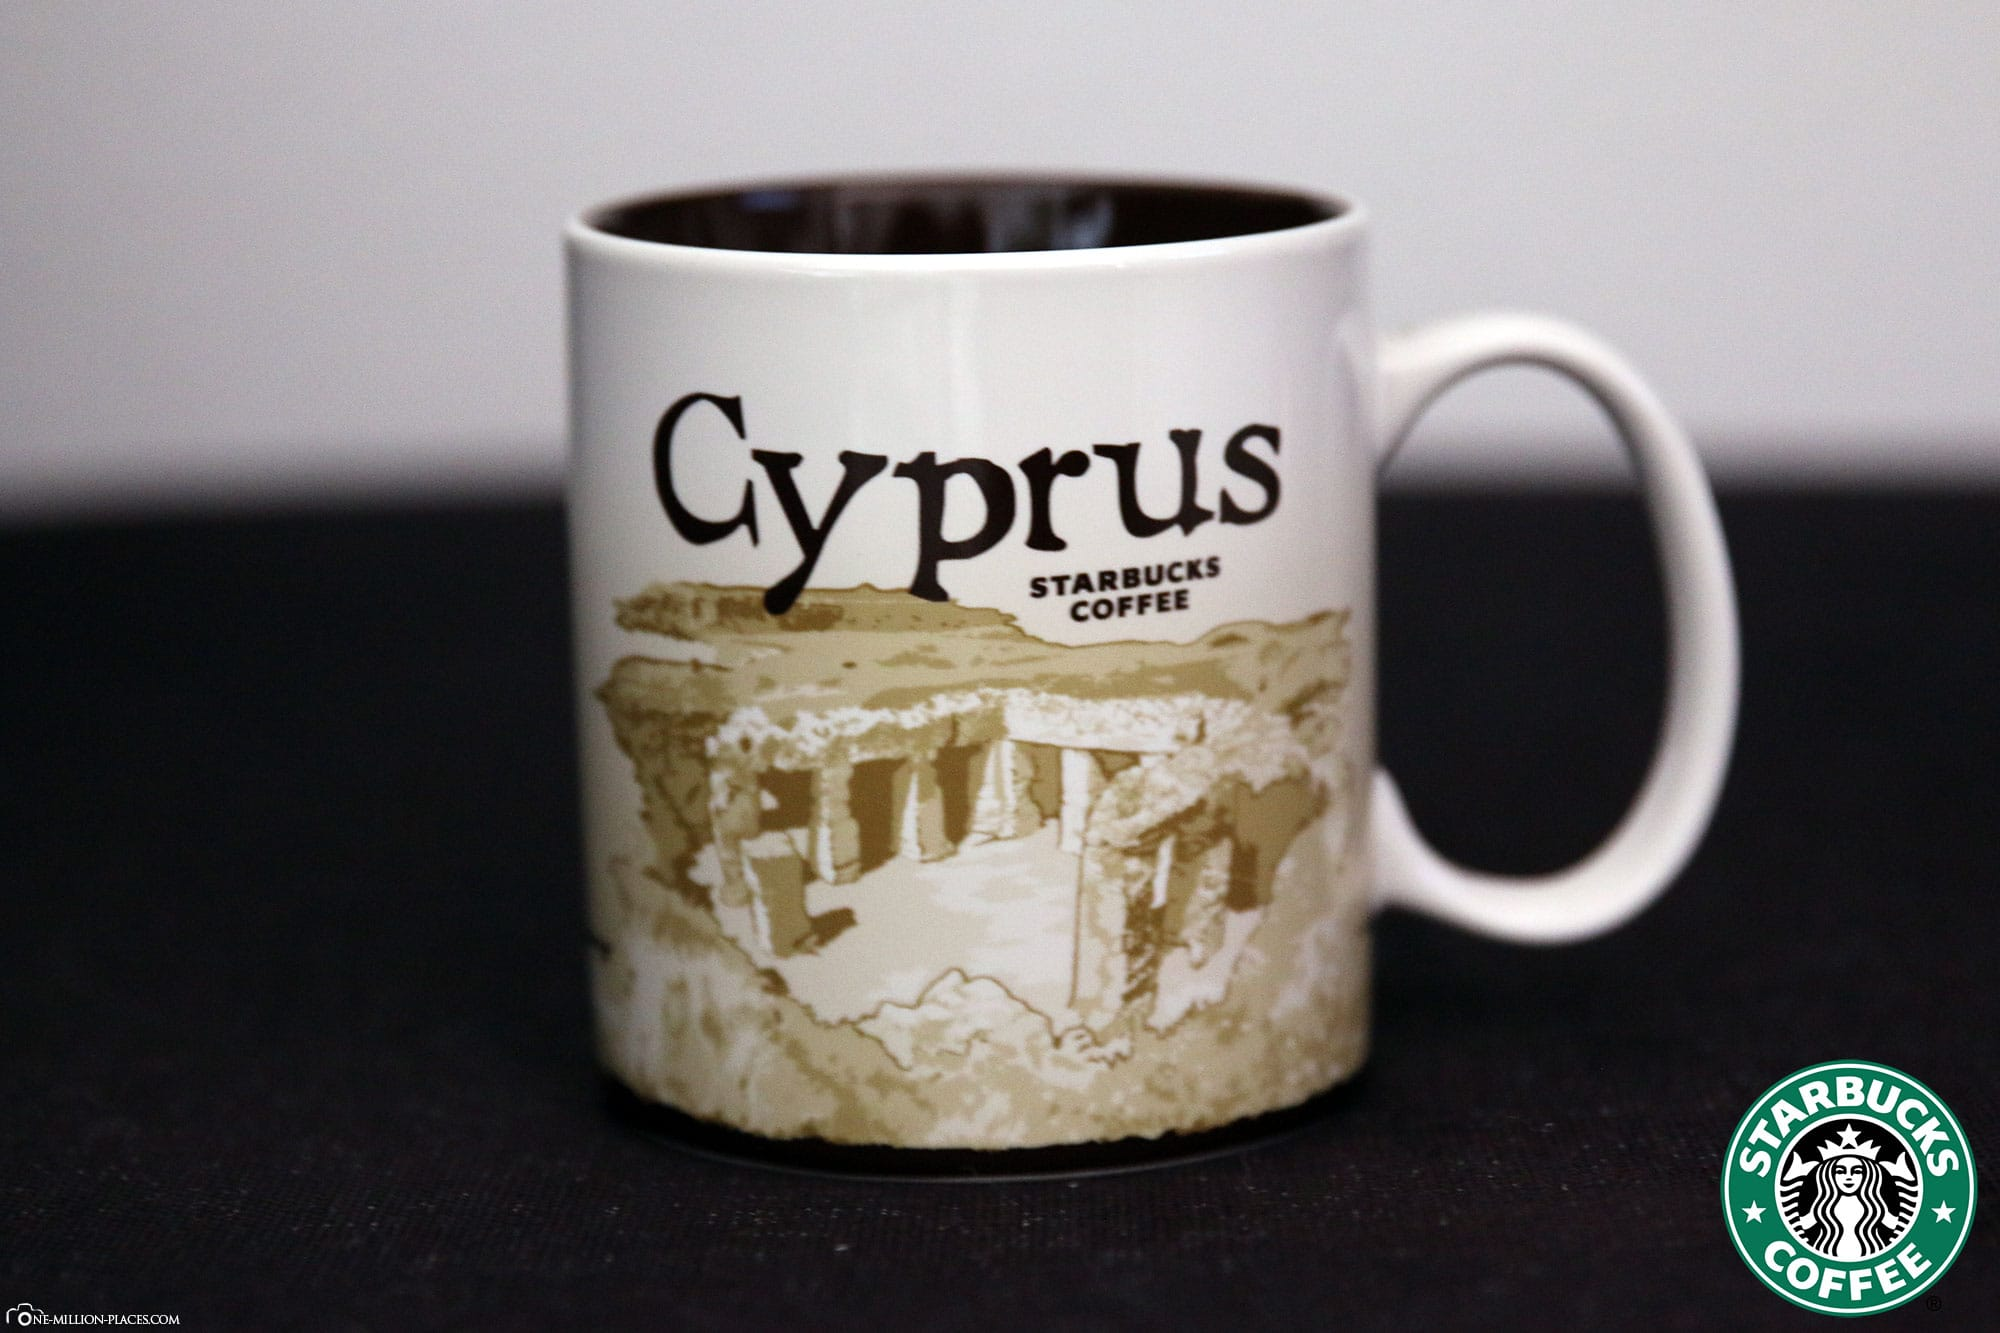 Cyprus, Starbucks Cup, Global Icon Series, City Mugs, Collection, Greece, Travelreport